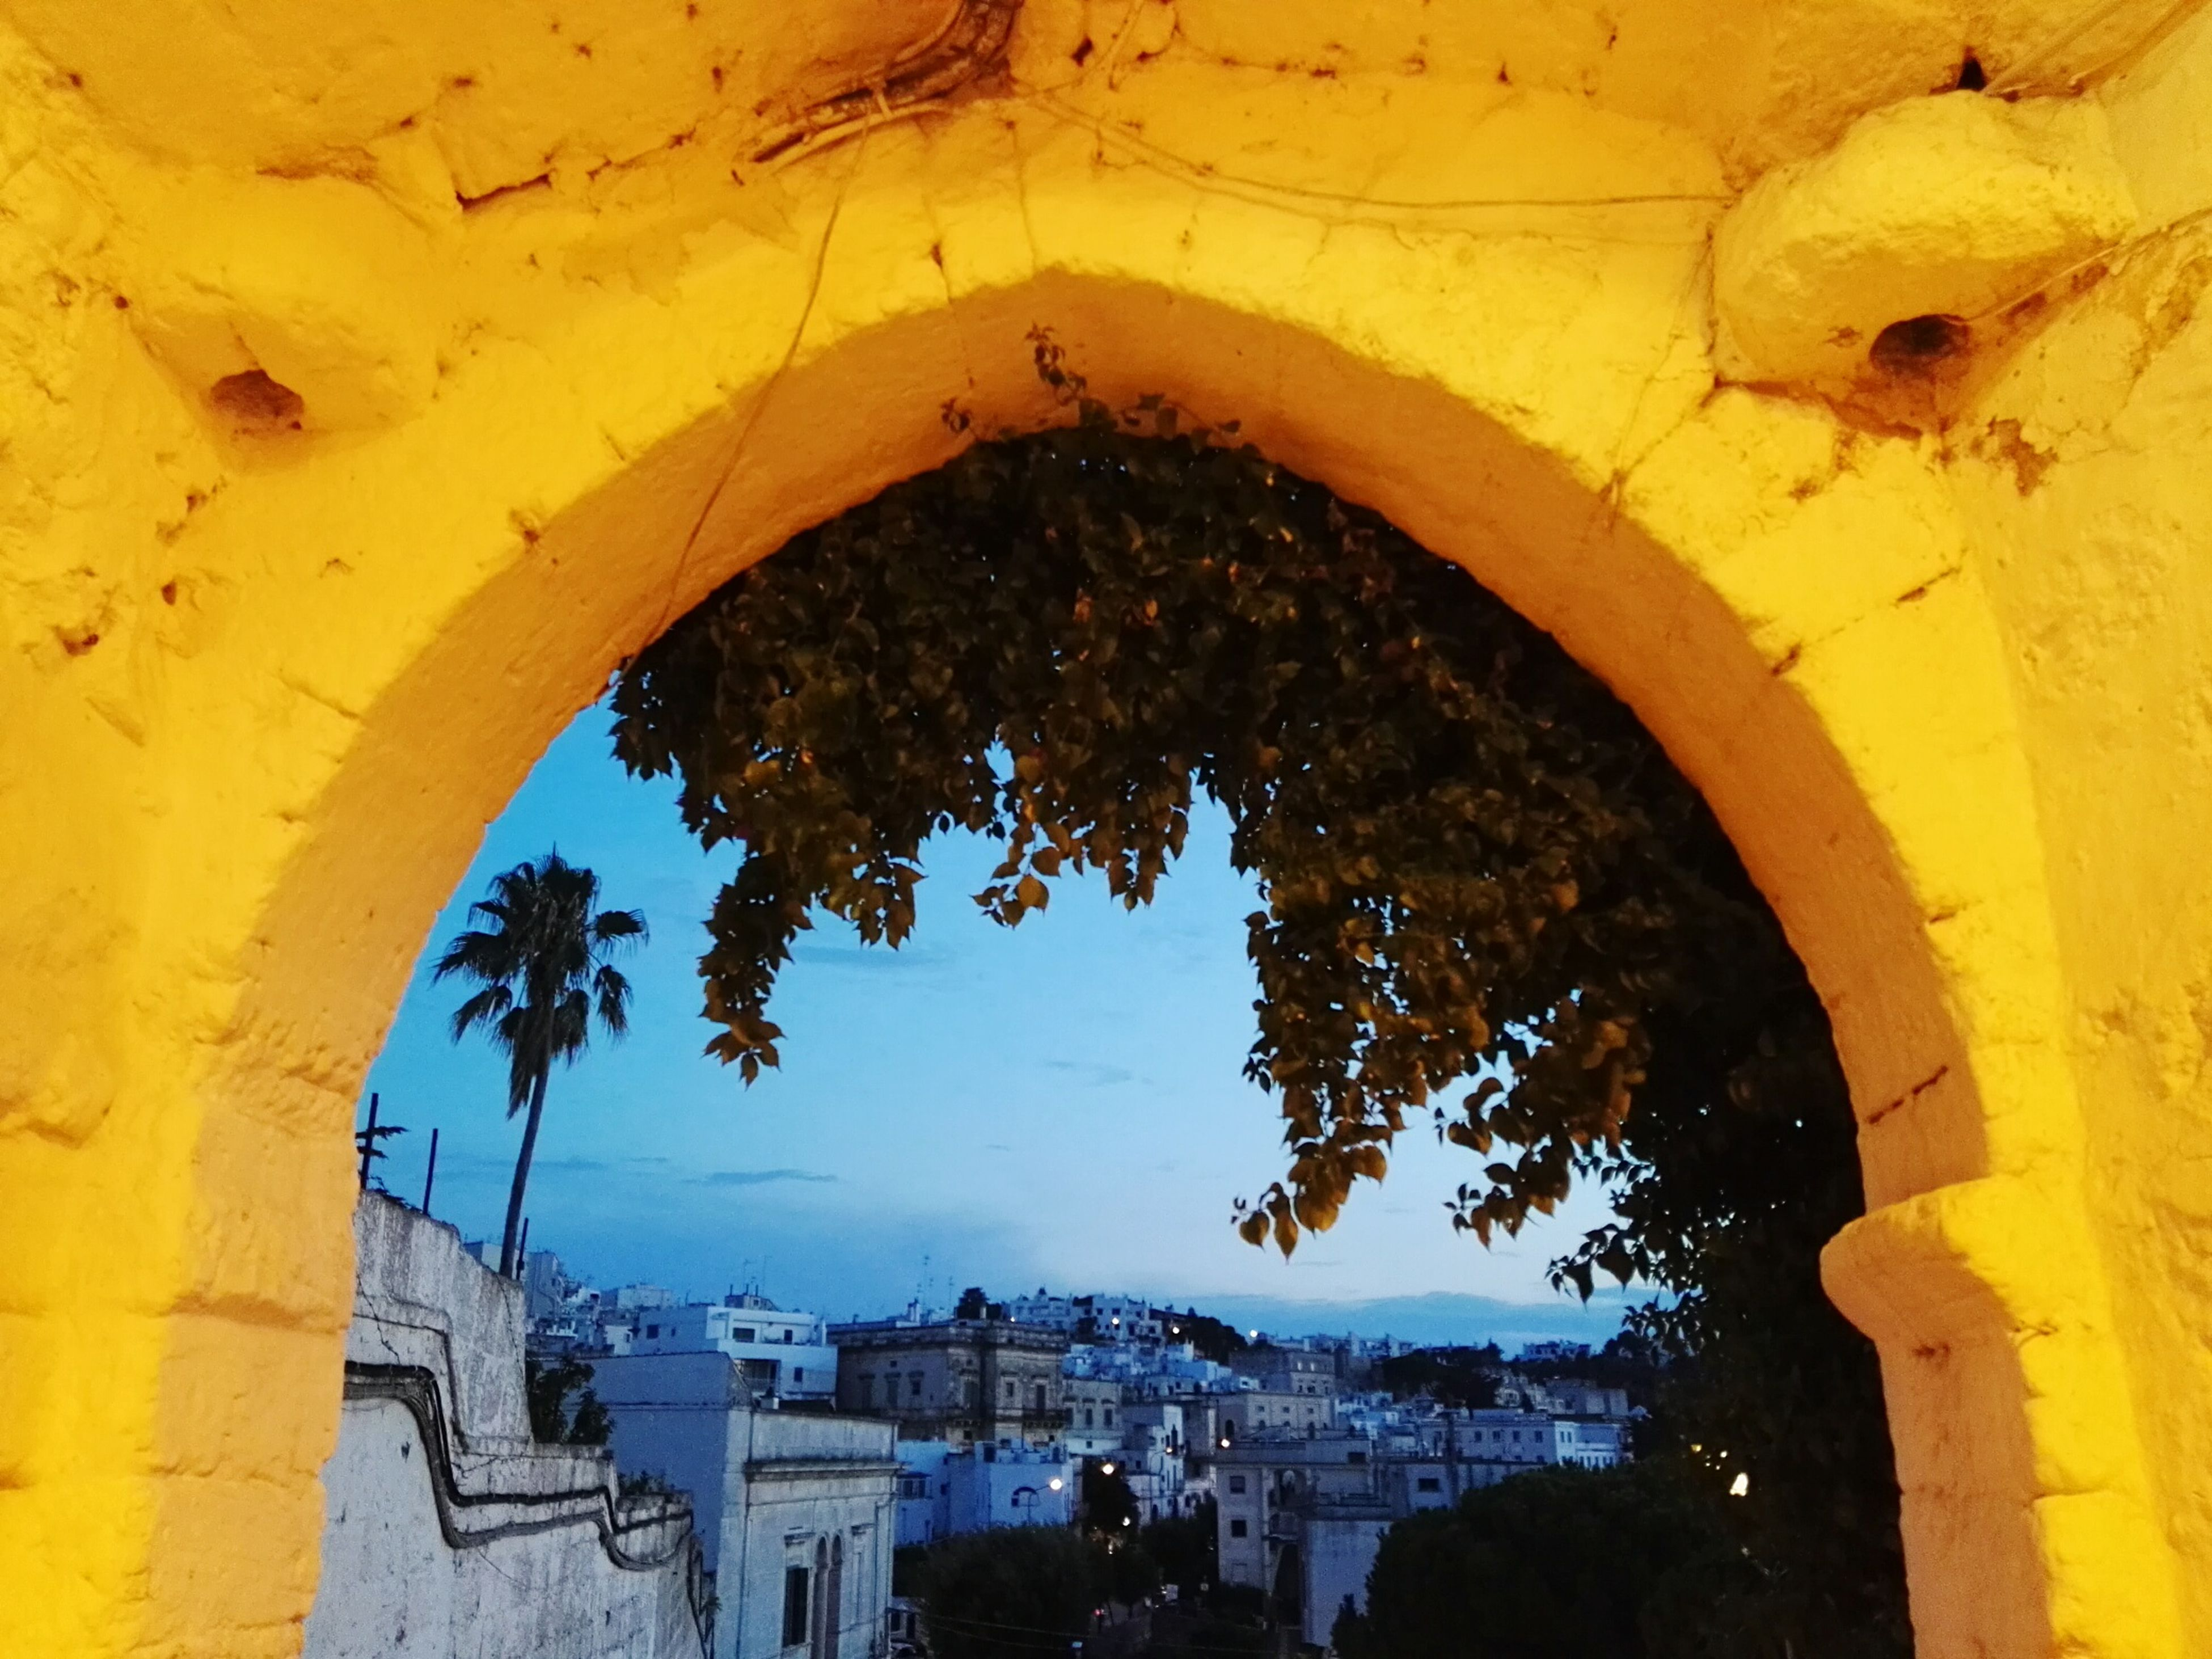 arch, built structure, architecture, tree, travel destinations, architectural column, deterioration, sky, architectural feature, outdoors, blue, day, damaged, archway, arched, medieval, tourism, no people, history, spanish culture, famous place